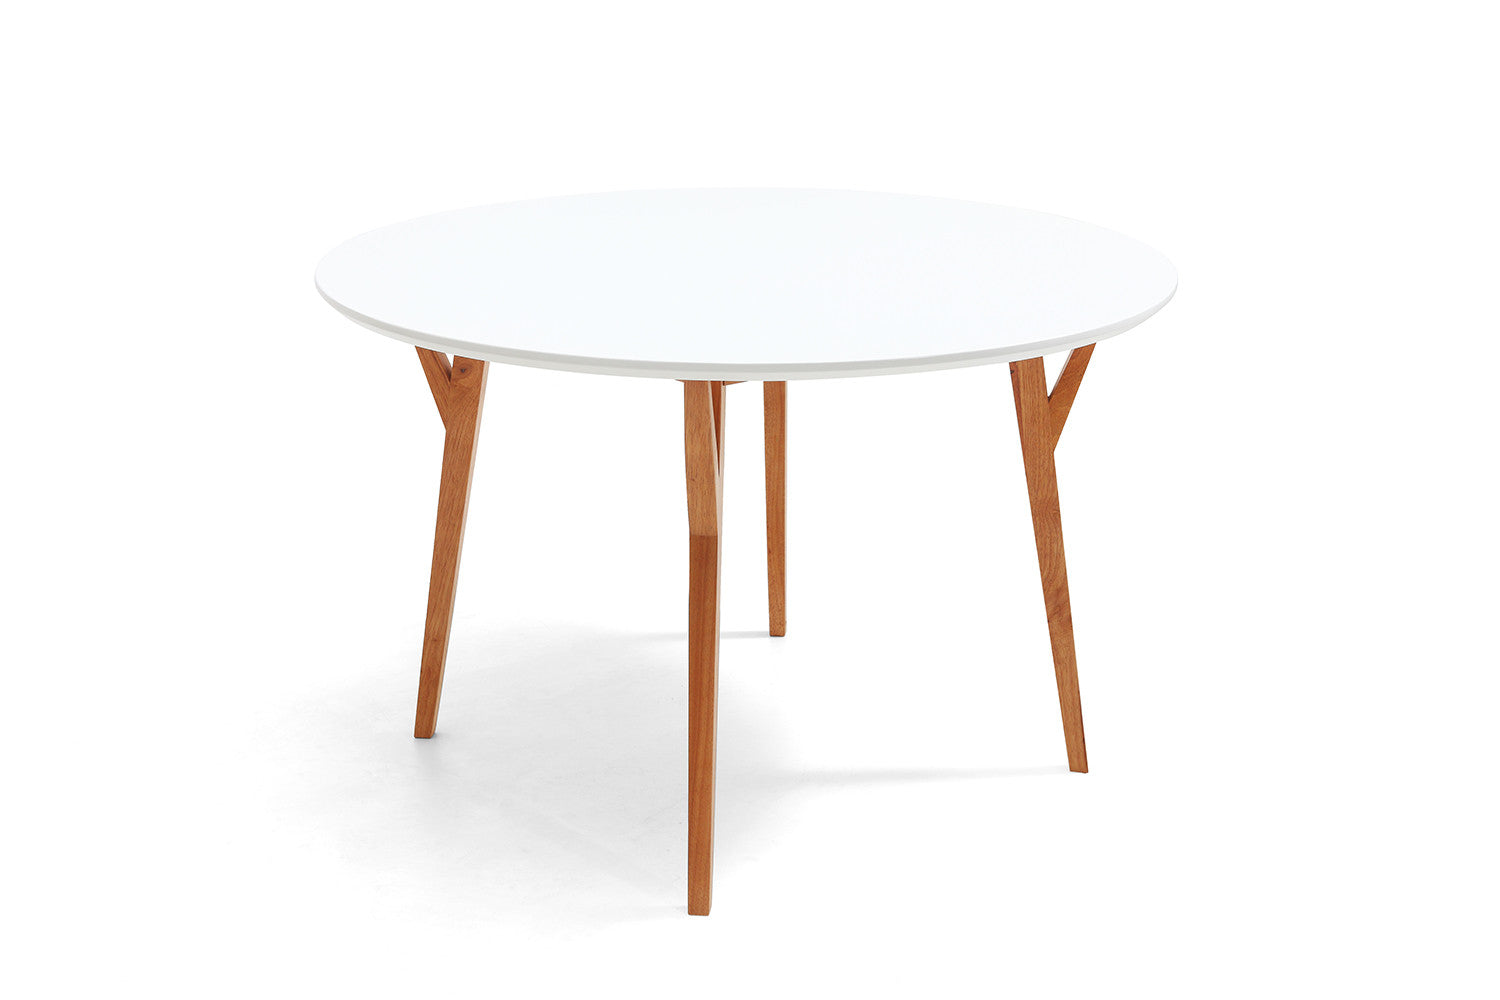 Table de salle manger ronde design scandinave moesa for Table scandinave ronde rallonge